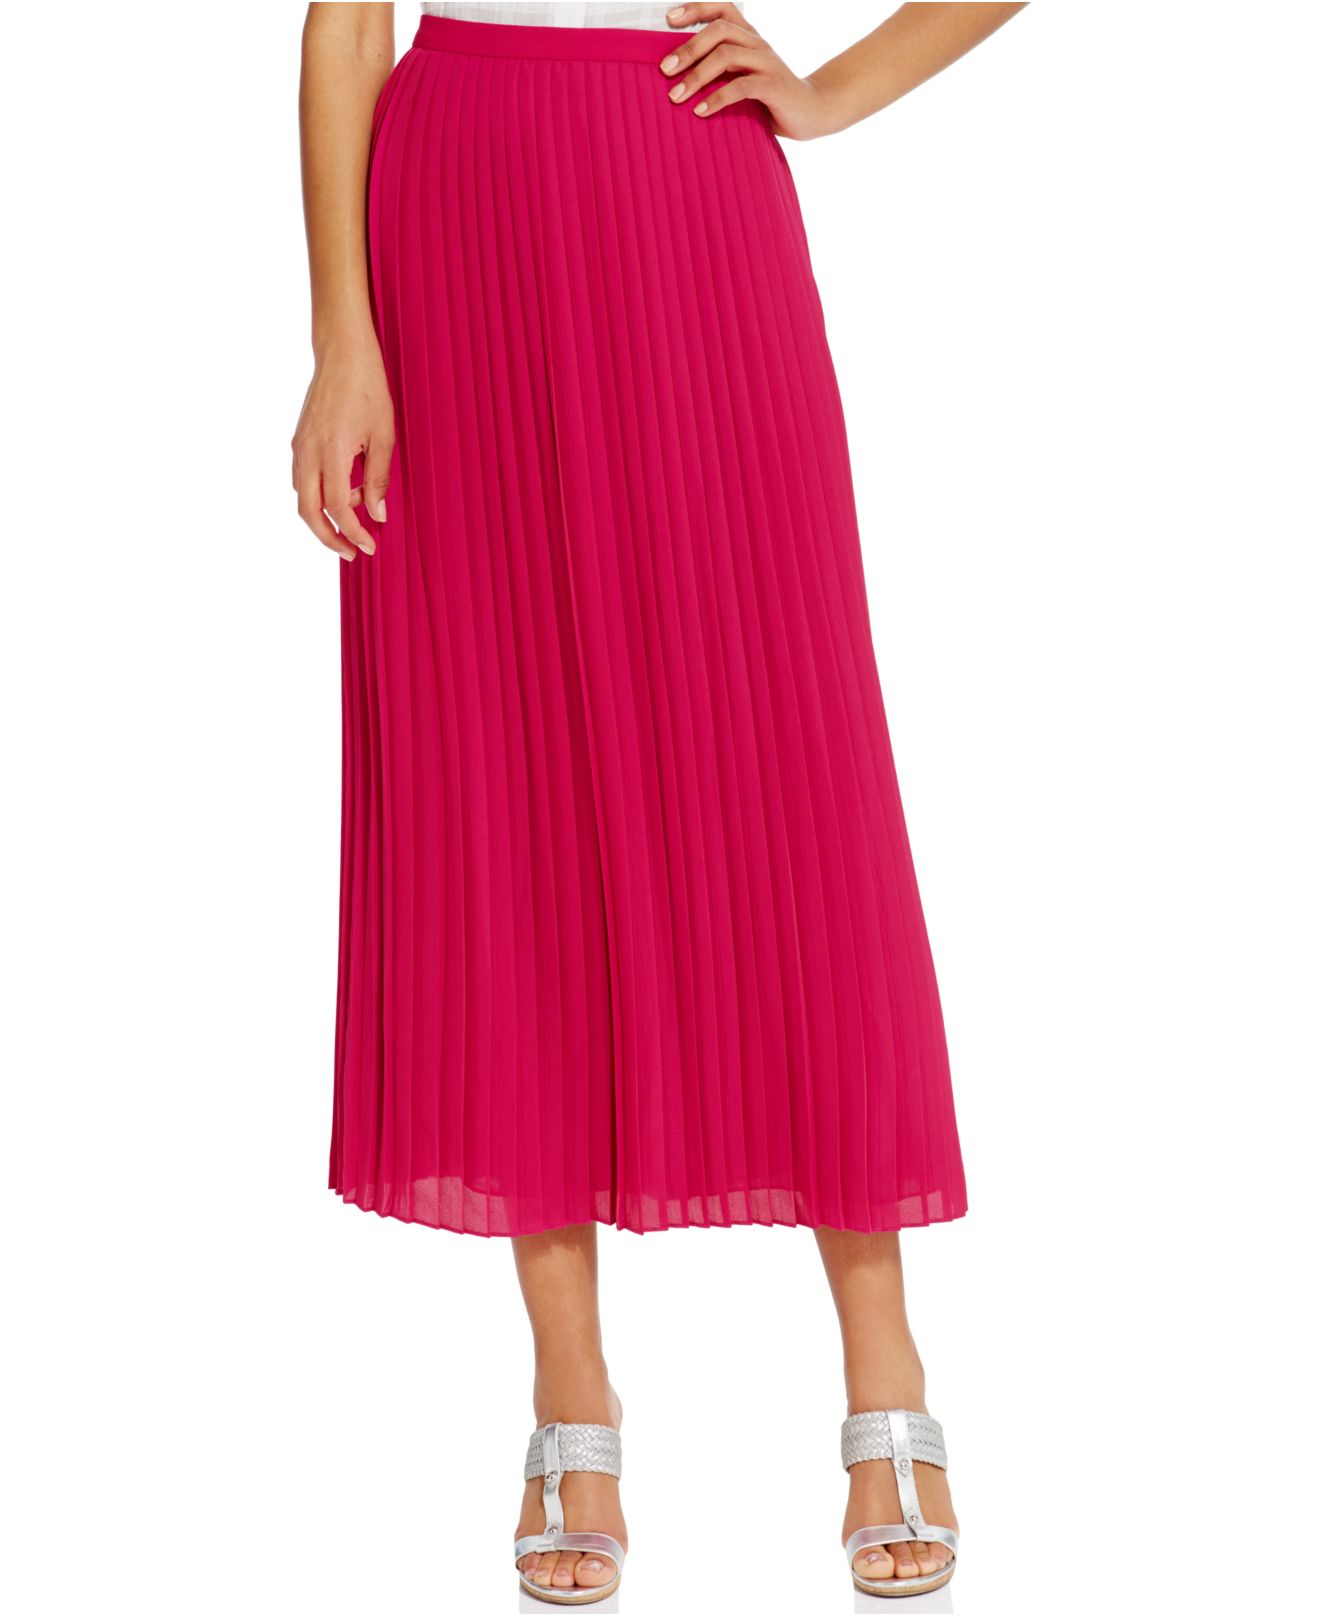 Tommy hilfiger Pleated Solid Maxi Skirt in Pink | Lyst